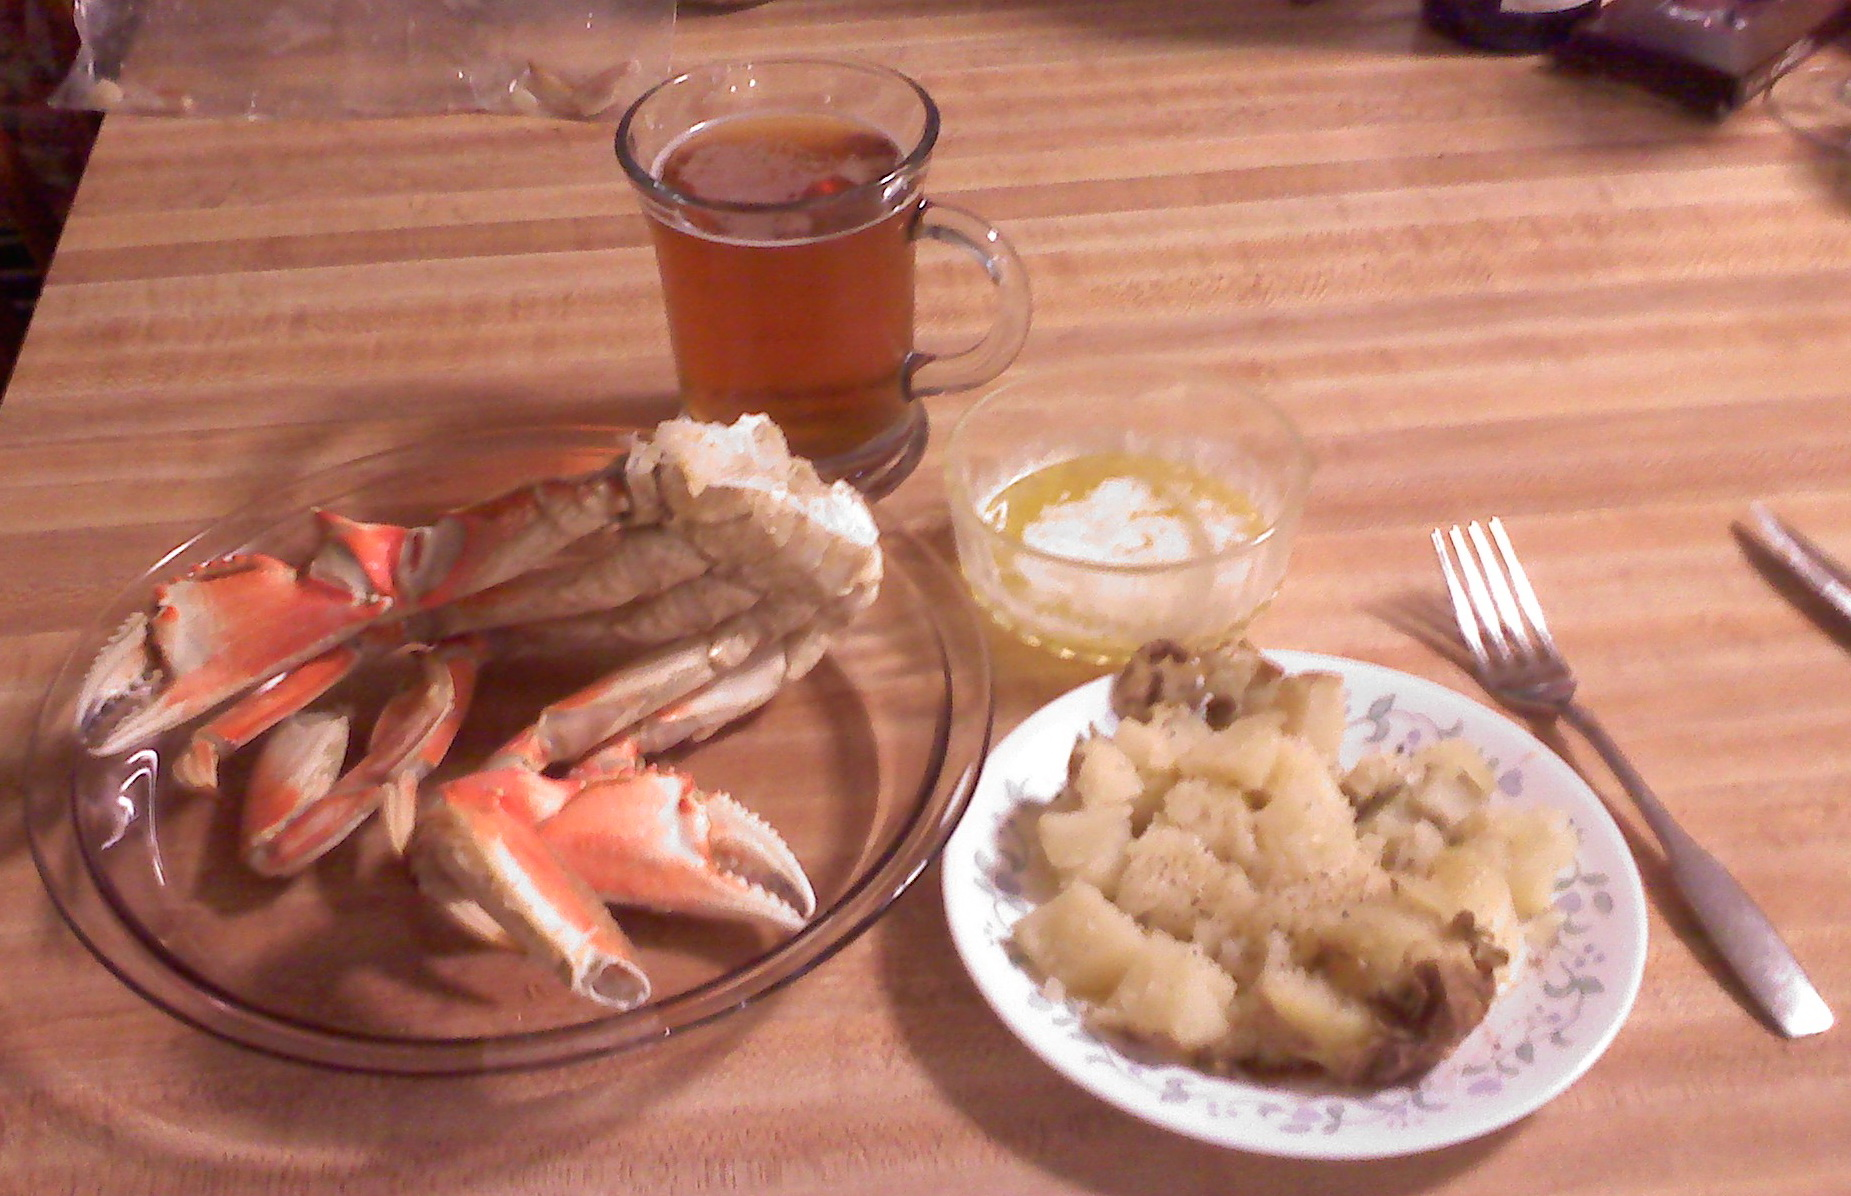 The Kitchen, Milford, NH :: Dungeness Crab with hot melted butter, baked potato and butter, a great salad with feta cheese and kalamata olives, and a GF beer to wash it all down.  Thanks to MN for another great taste of Dungeness Crab from the Pacific Northwest.